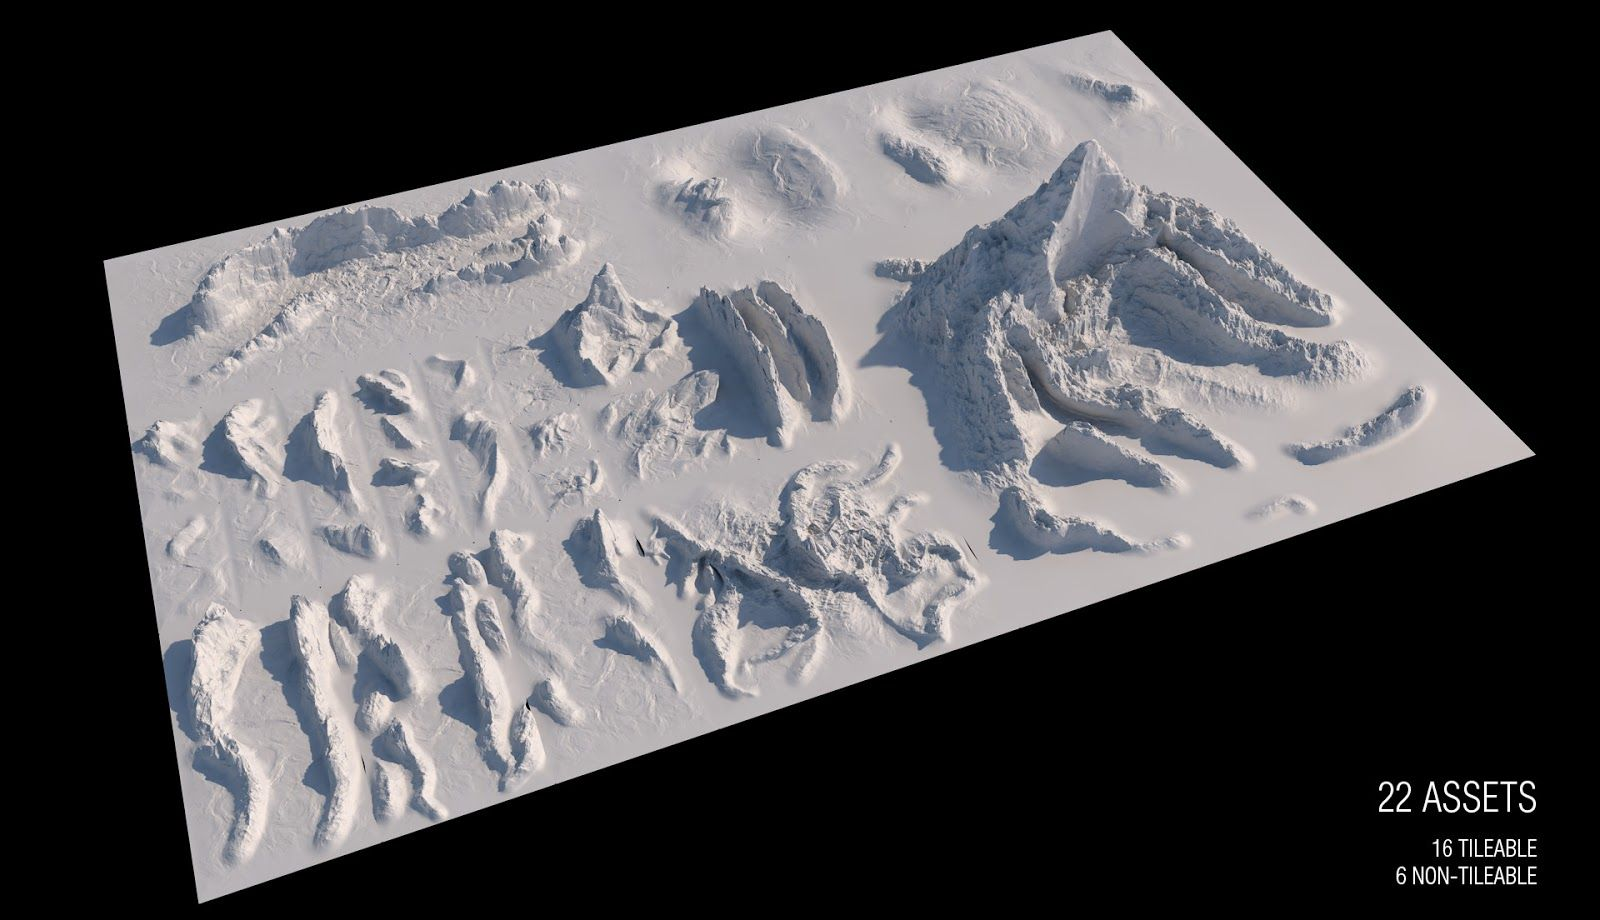 Download 22 free detailed mountain landscapes for maxon cinema 4d download 22 free detailed mountain landscapes for maxon cinema 4d gumiabroncs Gallery